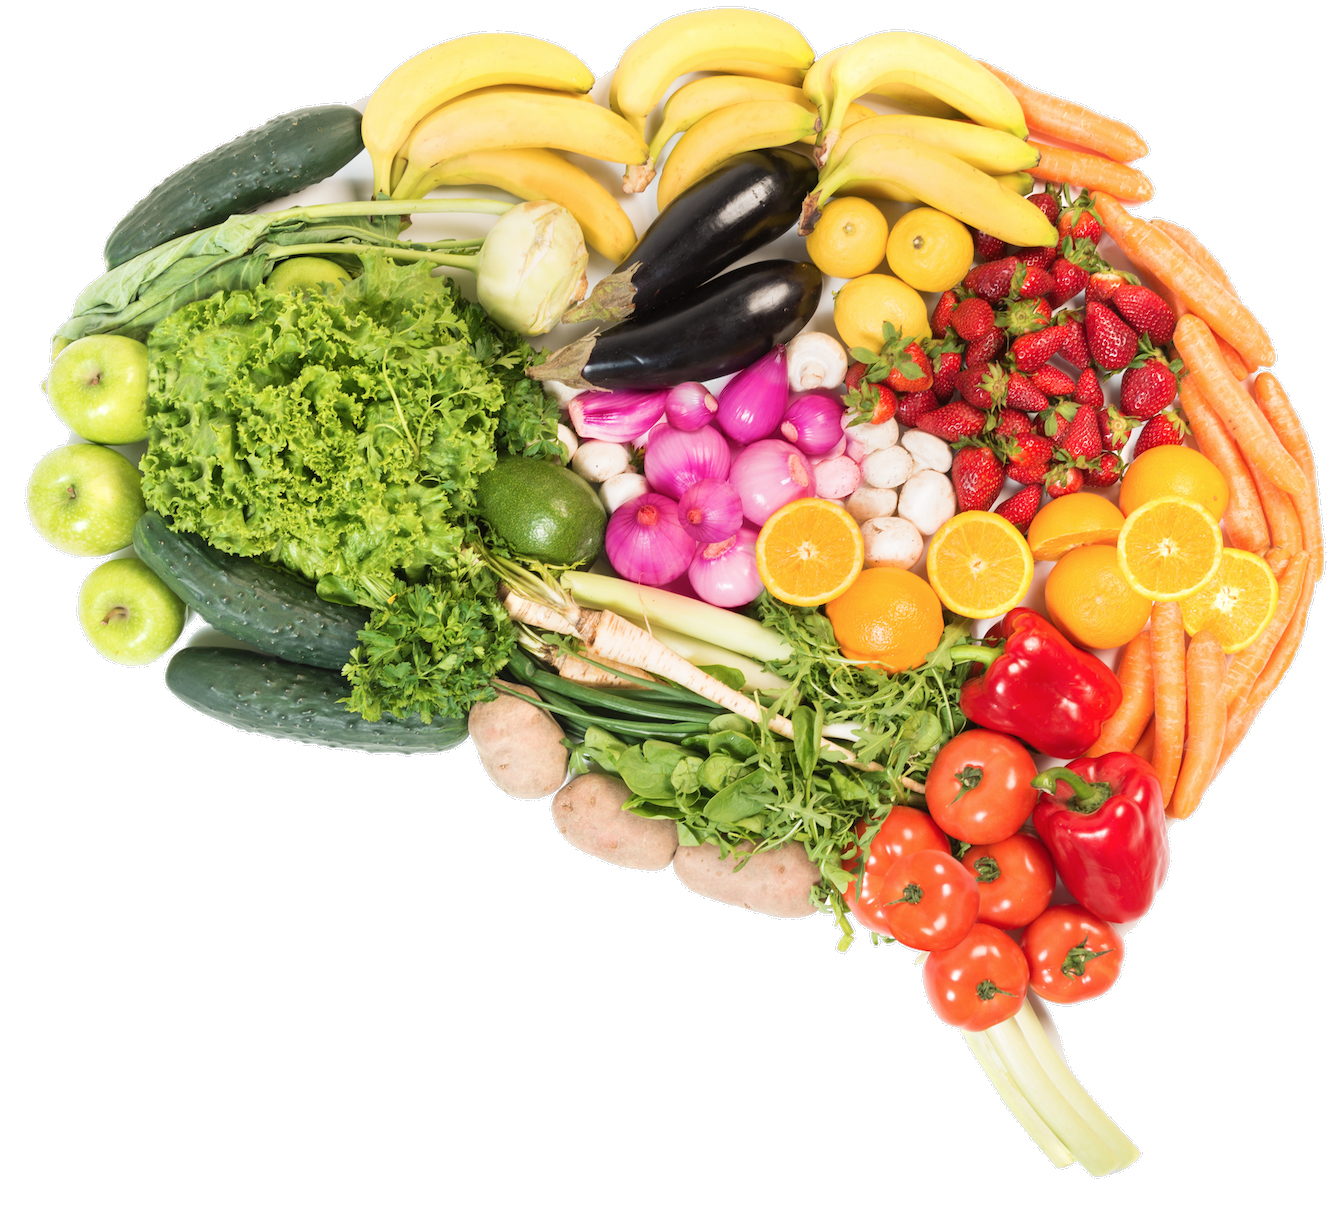 Image of fruit and vegetables arranged in the shape of a human brain.